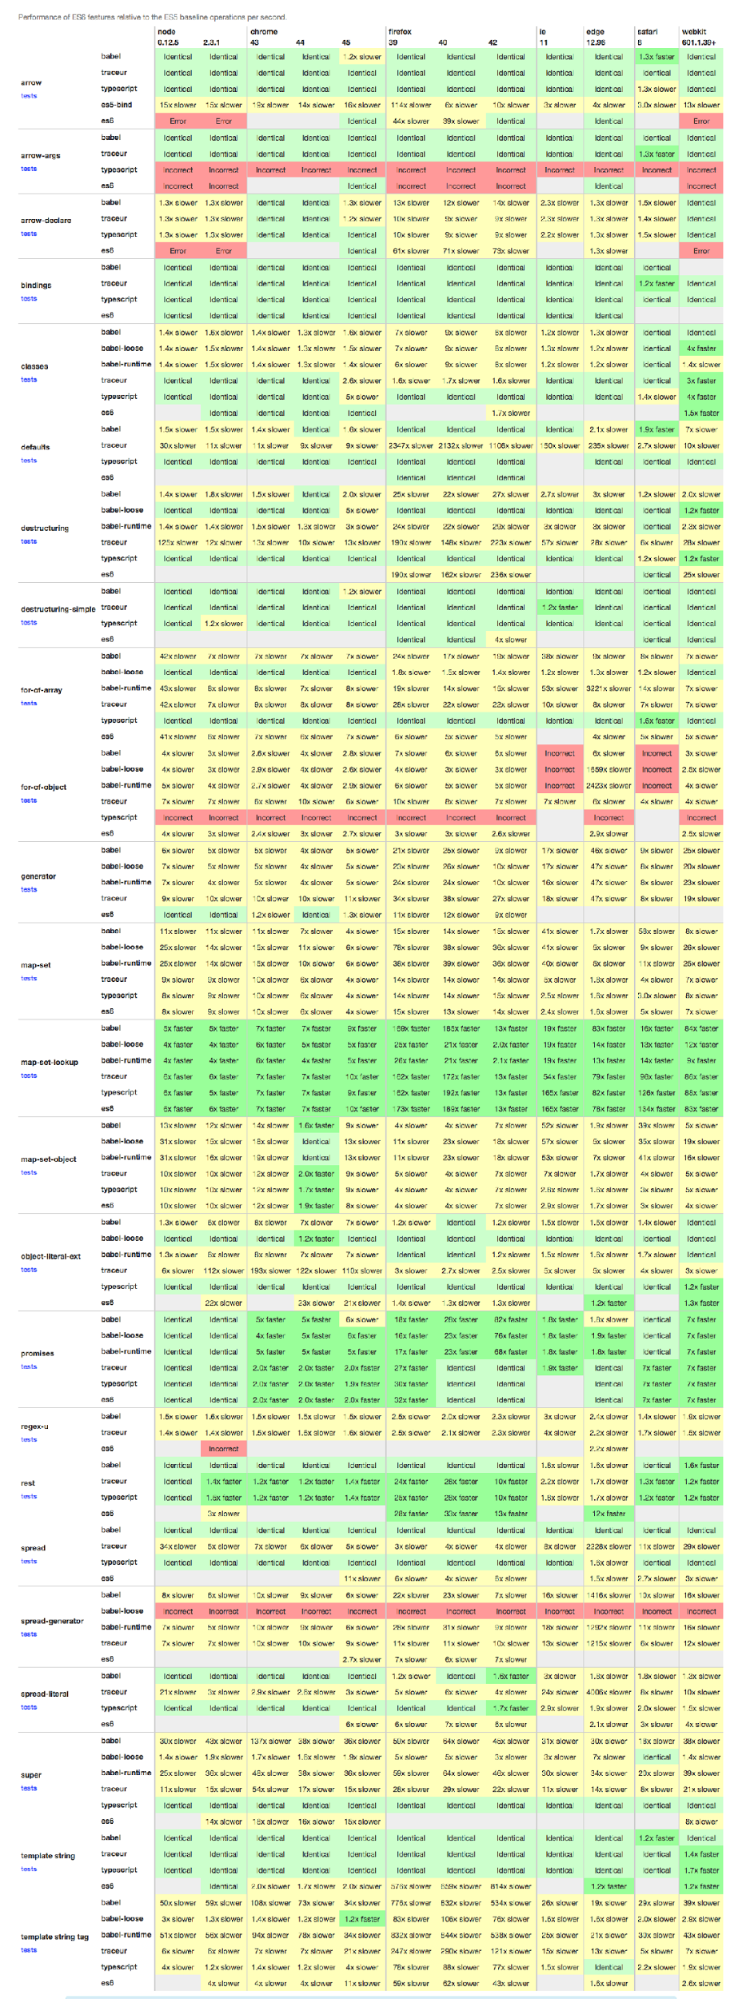 A report shows the performance of ES6 features relative to the ES5 baseline operations per second.